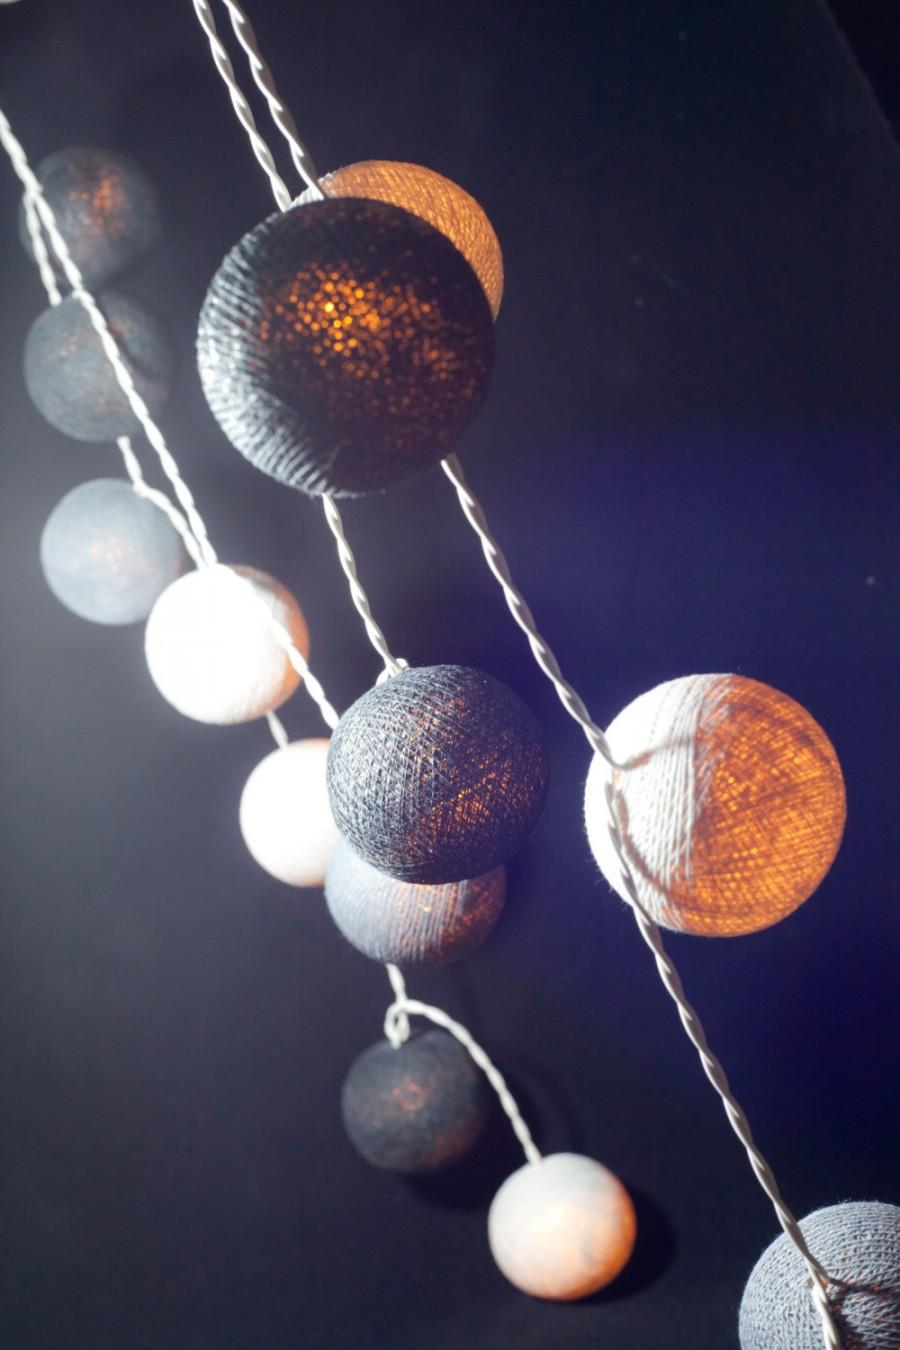 Mariage - 20 Gray Tone Cotton Ball String Lights for Decor Bedroom Wedding Patio Party Garden Spa and Holiday lighting Indoor Outdoor